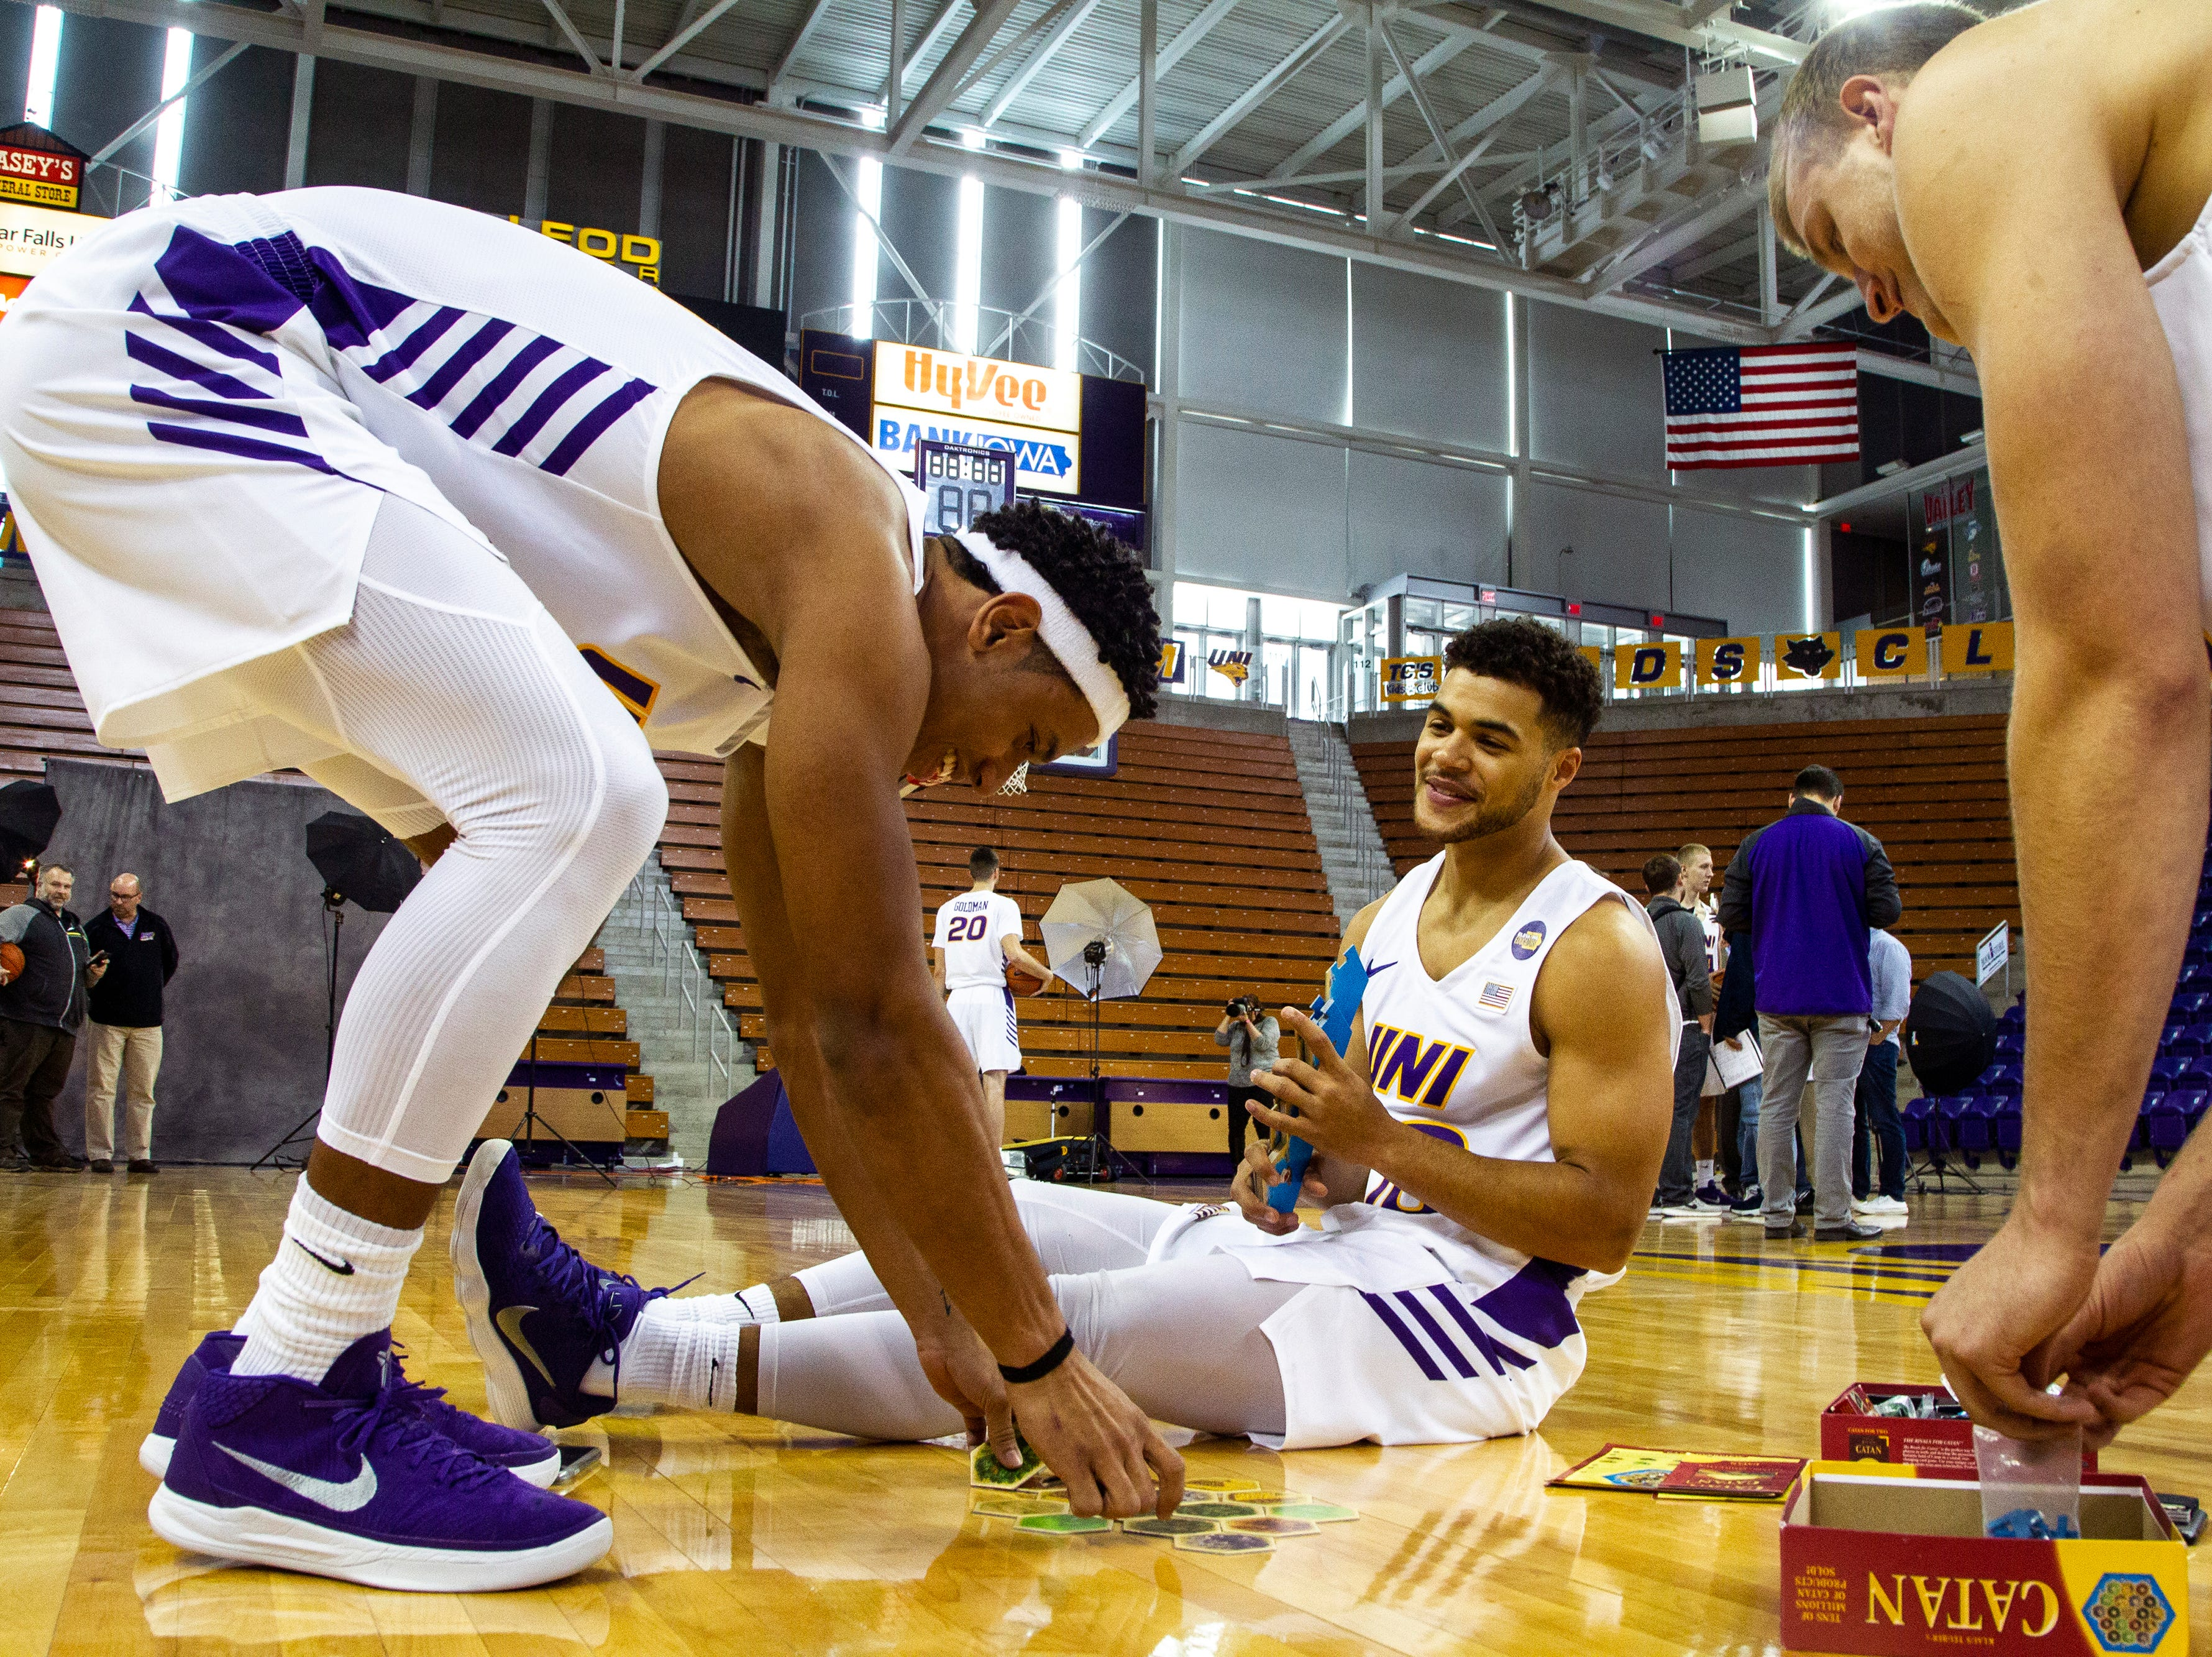 Northern Iowa guard Trae Berhow (11) Miles Wentzien (10) and Justin Dahl (15) play the Settlers of Catan board game during Panthers men's basketball media day on Wednesday, Oct. 17, 2018, at the McLeod Center in Cedar Falls.